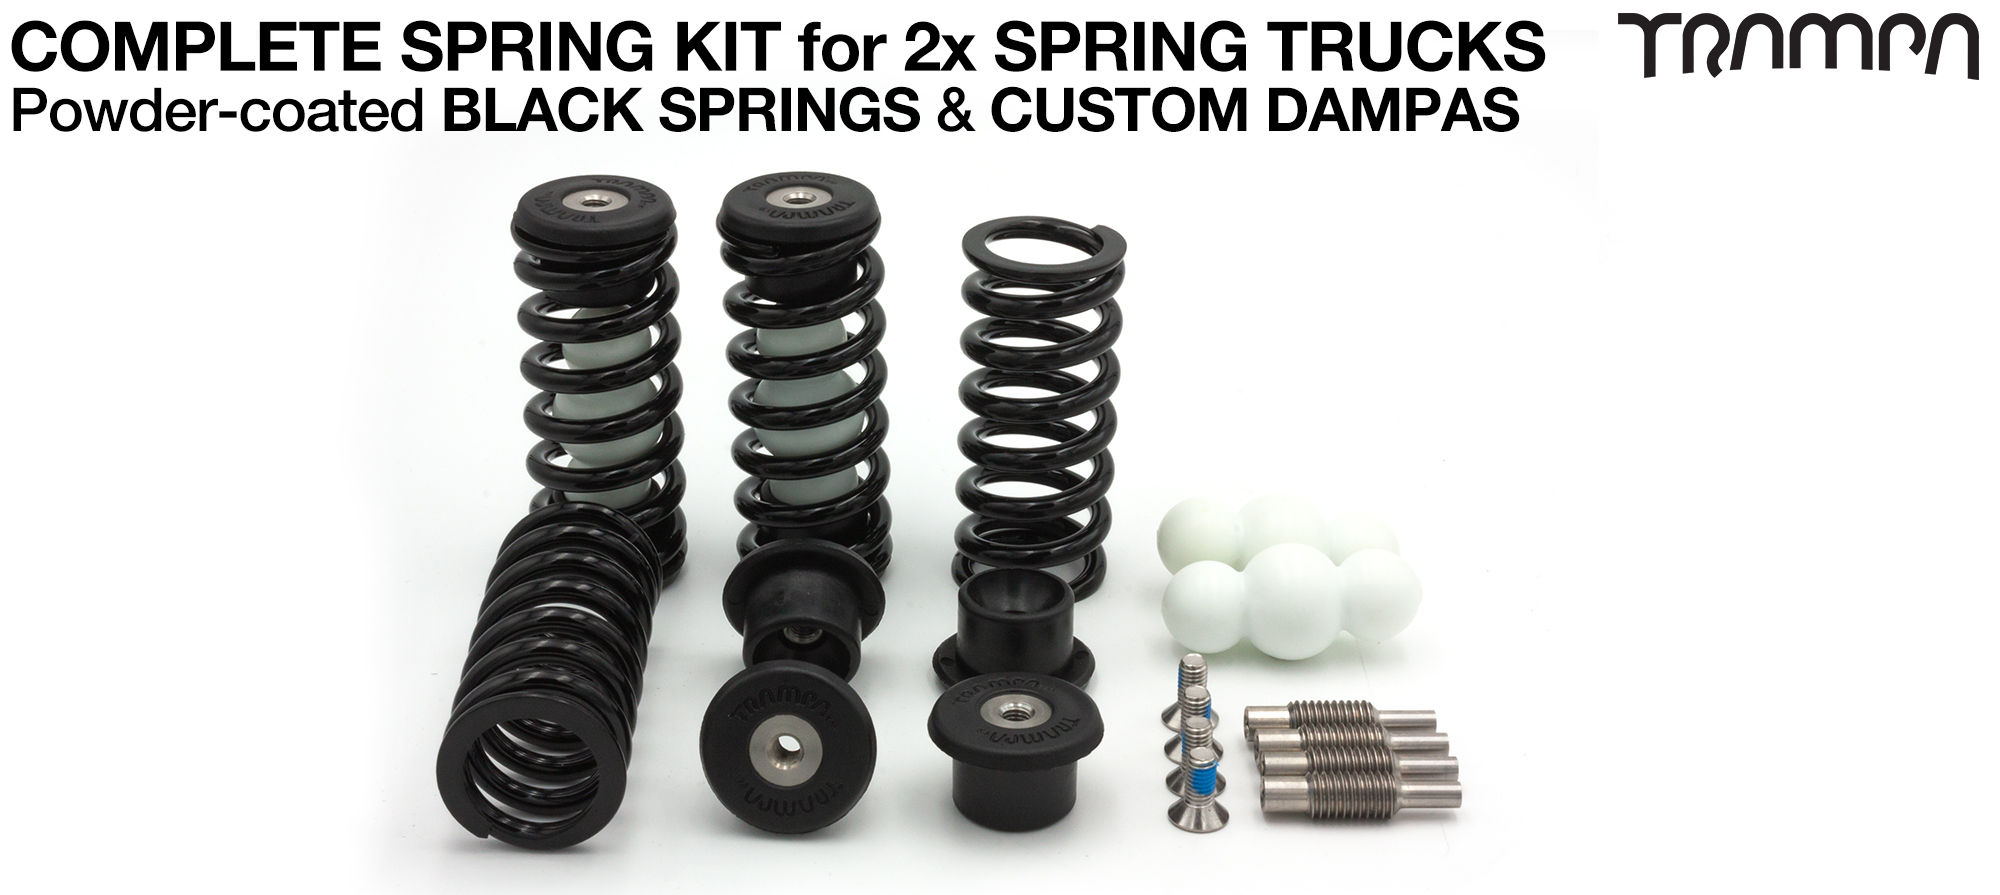 Complete Spring kit for 1x Board = 4x BLACK Springs 4x Dampa 8x Spring Retainers 4x Spring Adjuster & 4 M5x12mm Countersunk Bolt